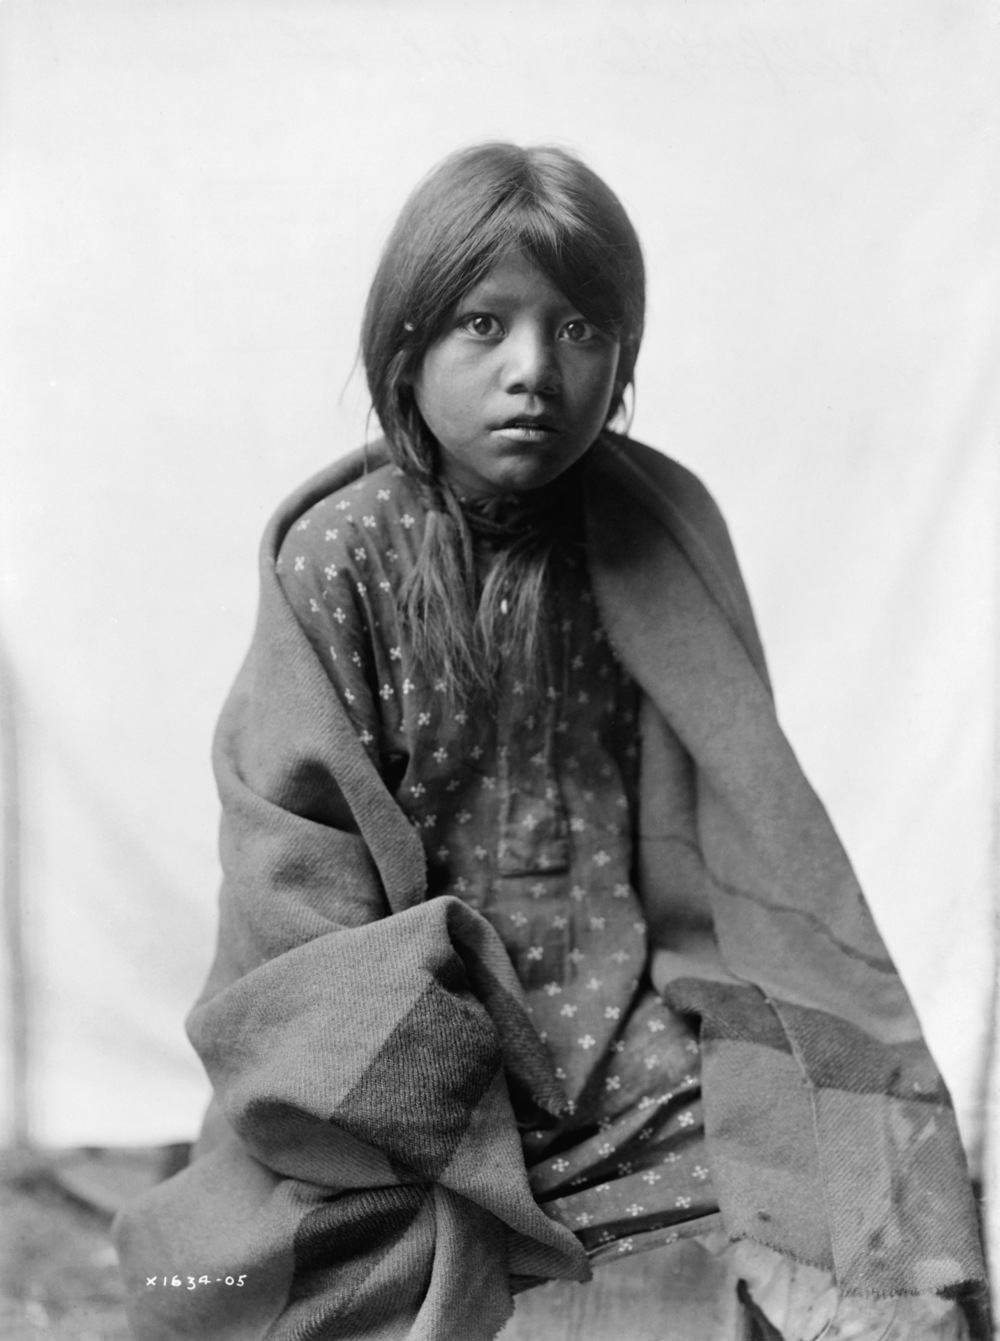 Taos Girl Edward Curtis 1905.jpg